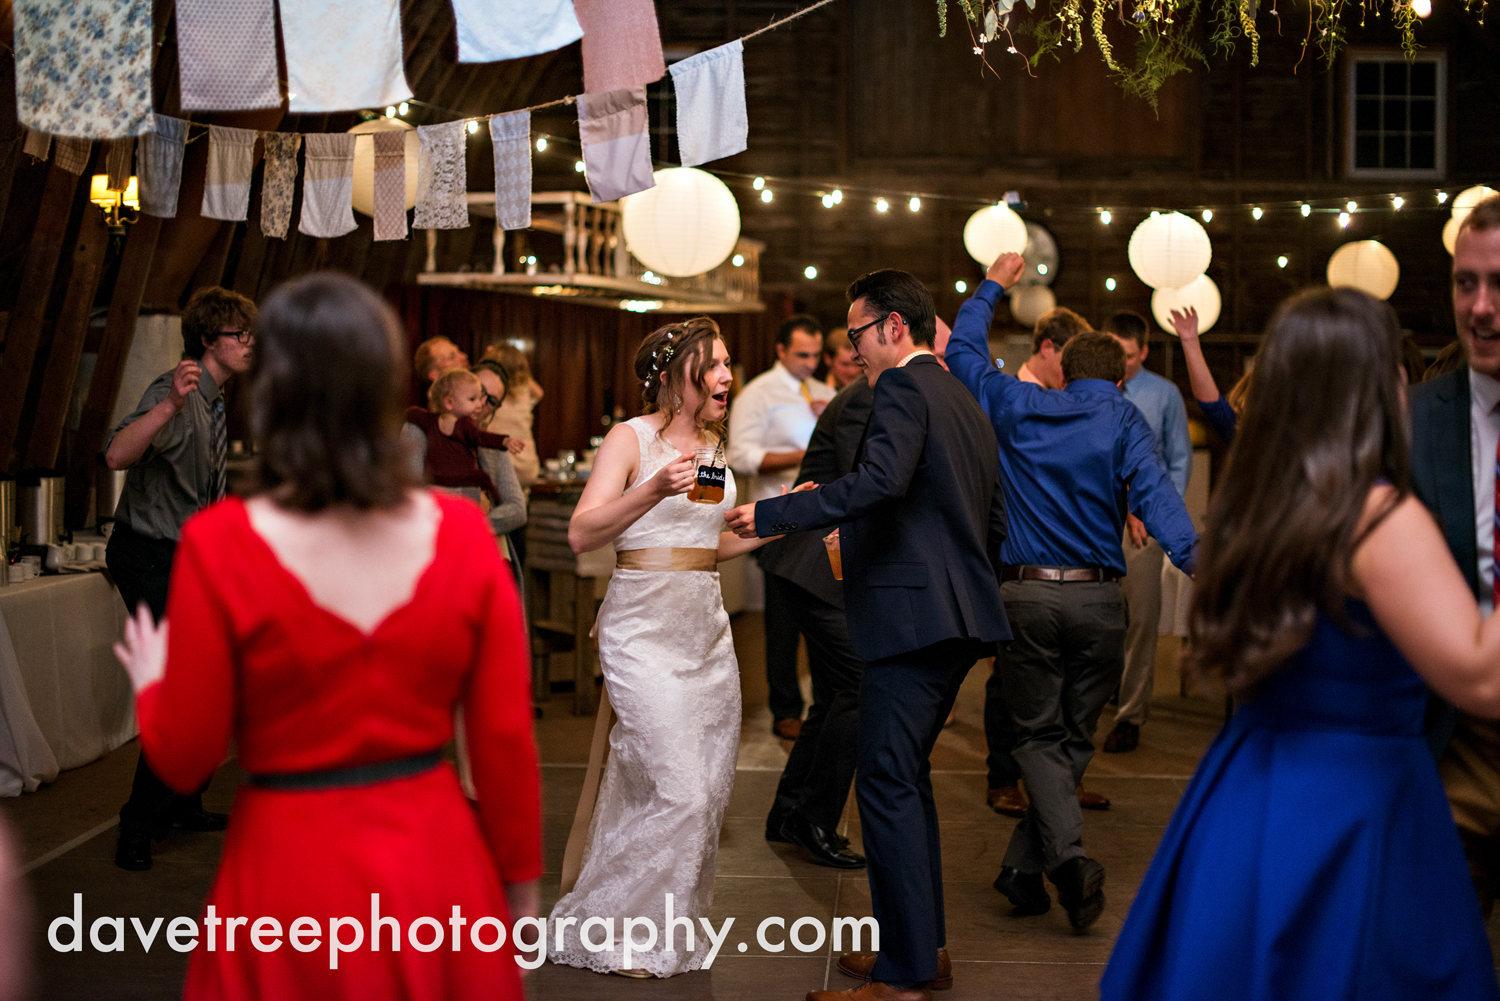 benton_harbor_wedding_photographer_blue_dress_barn_53.jpg